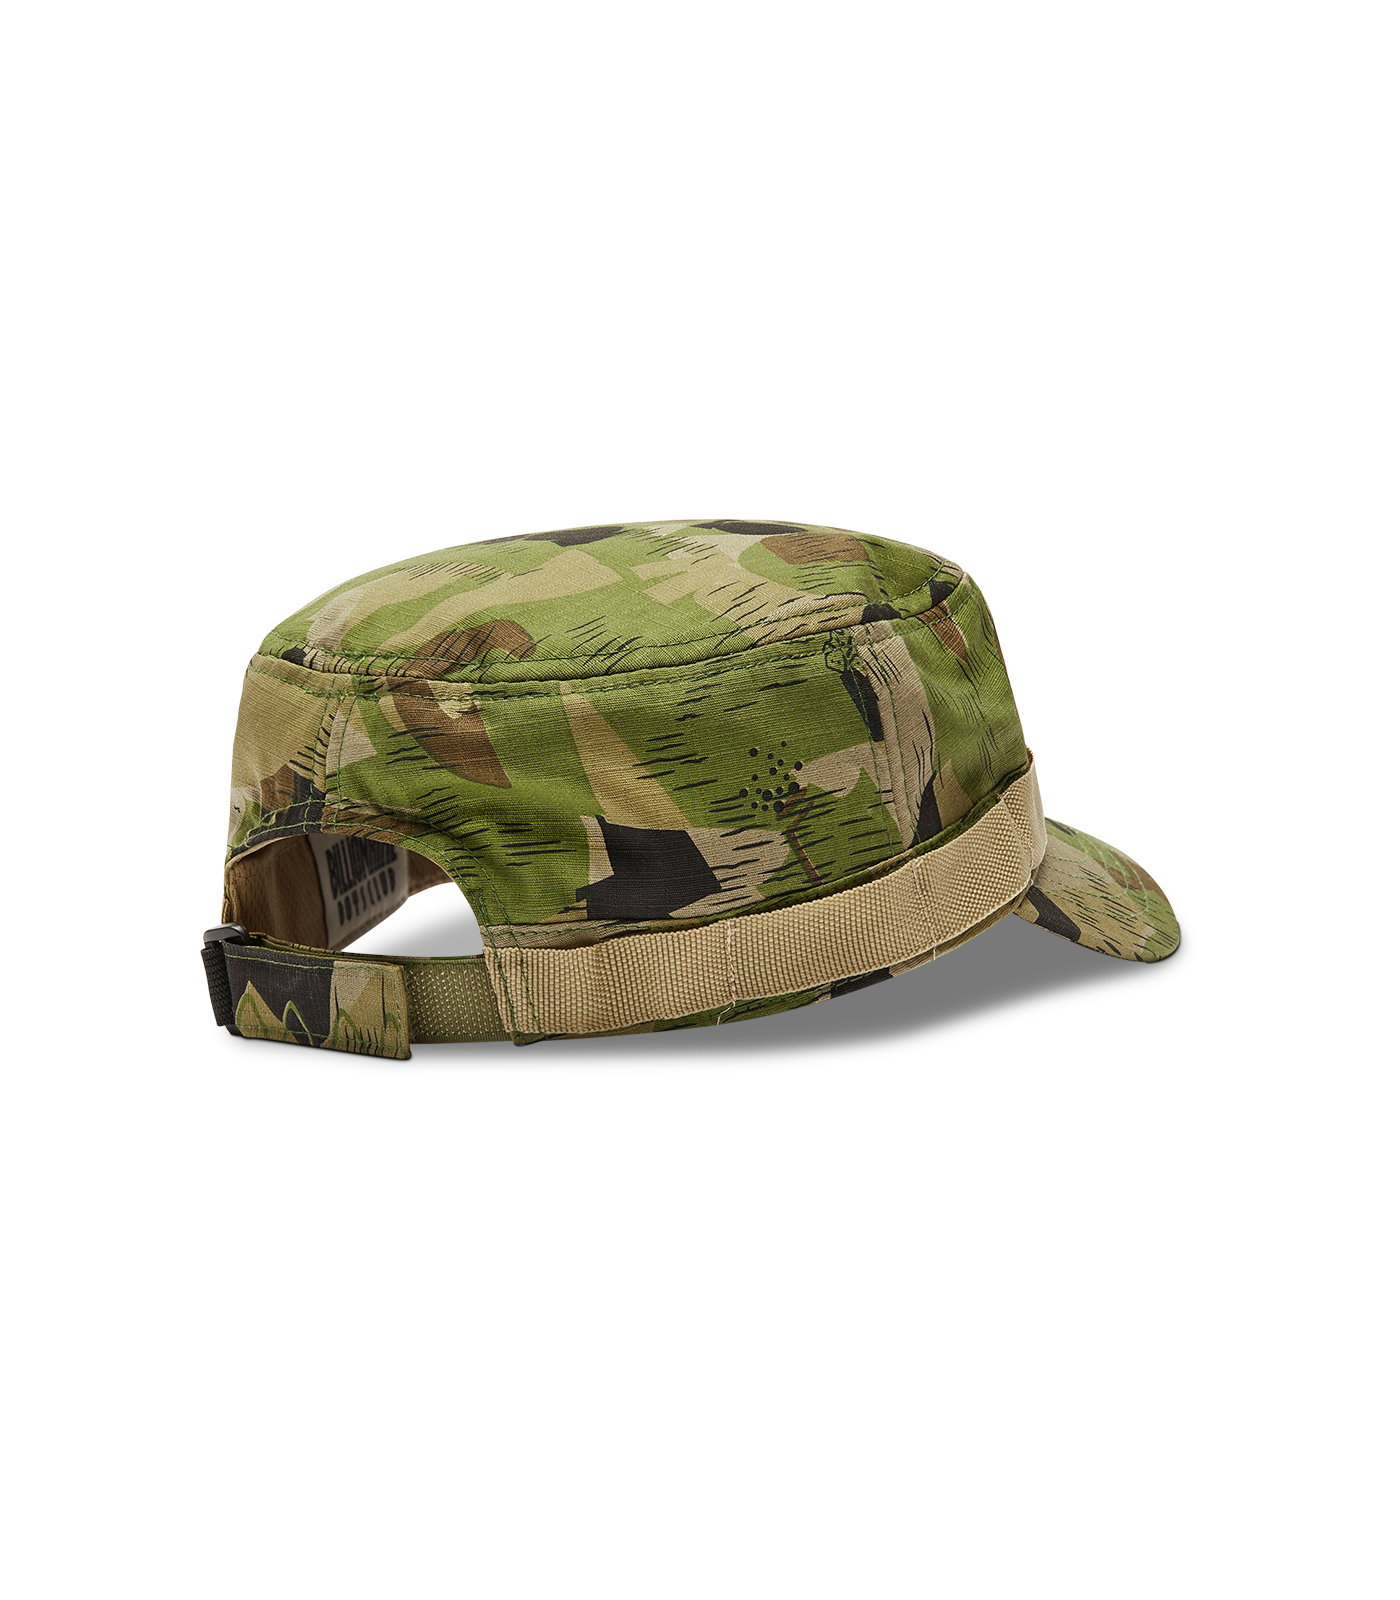 CAMO FIELD CAP - GREEN CAMO